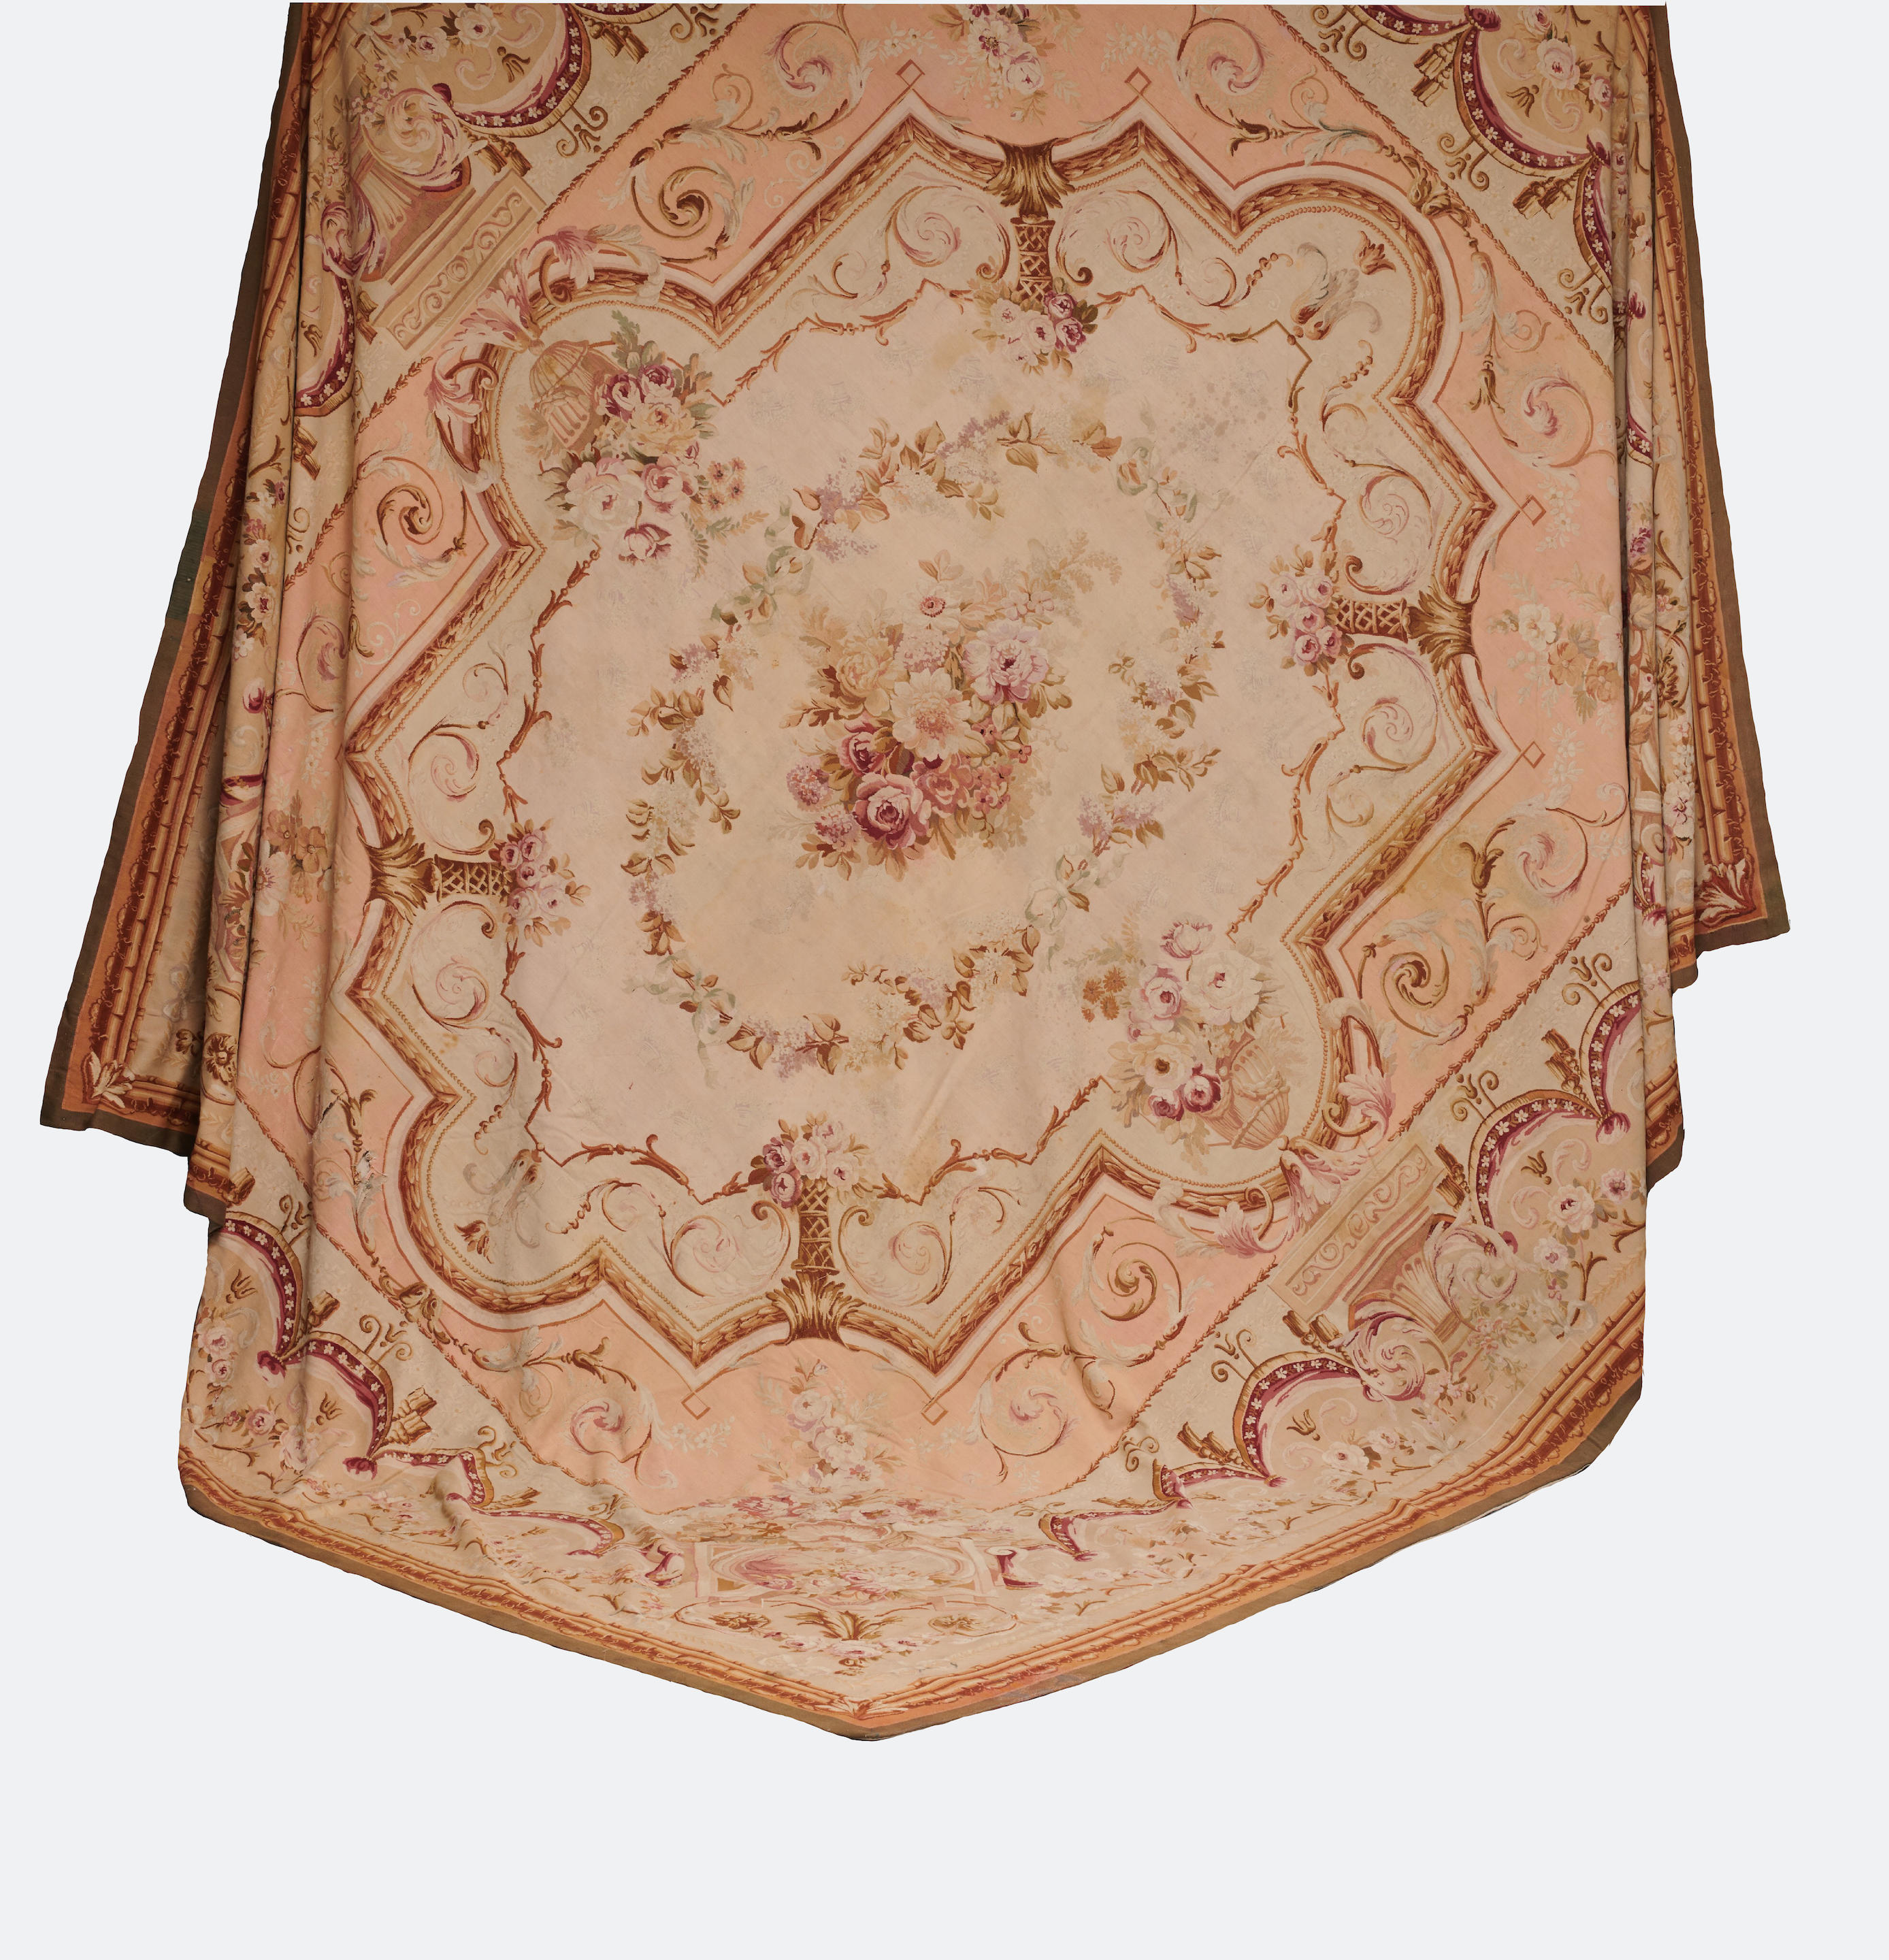 AN AUBUSSON TAPESTRY CARPET